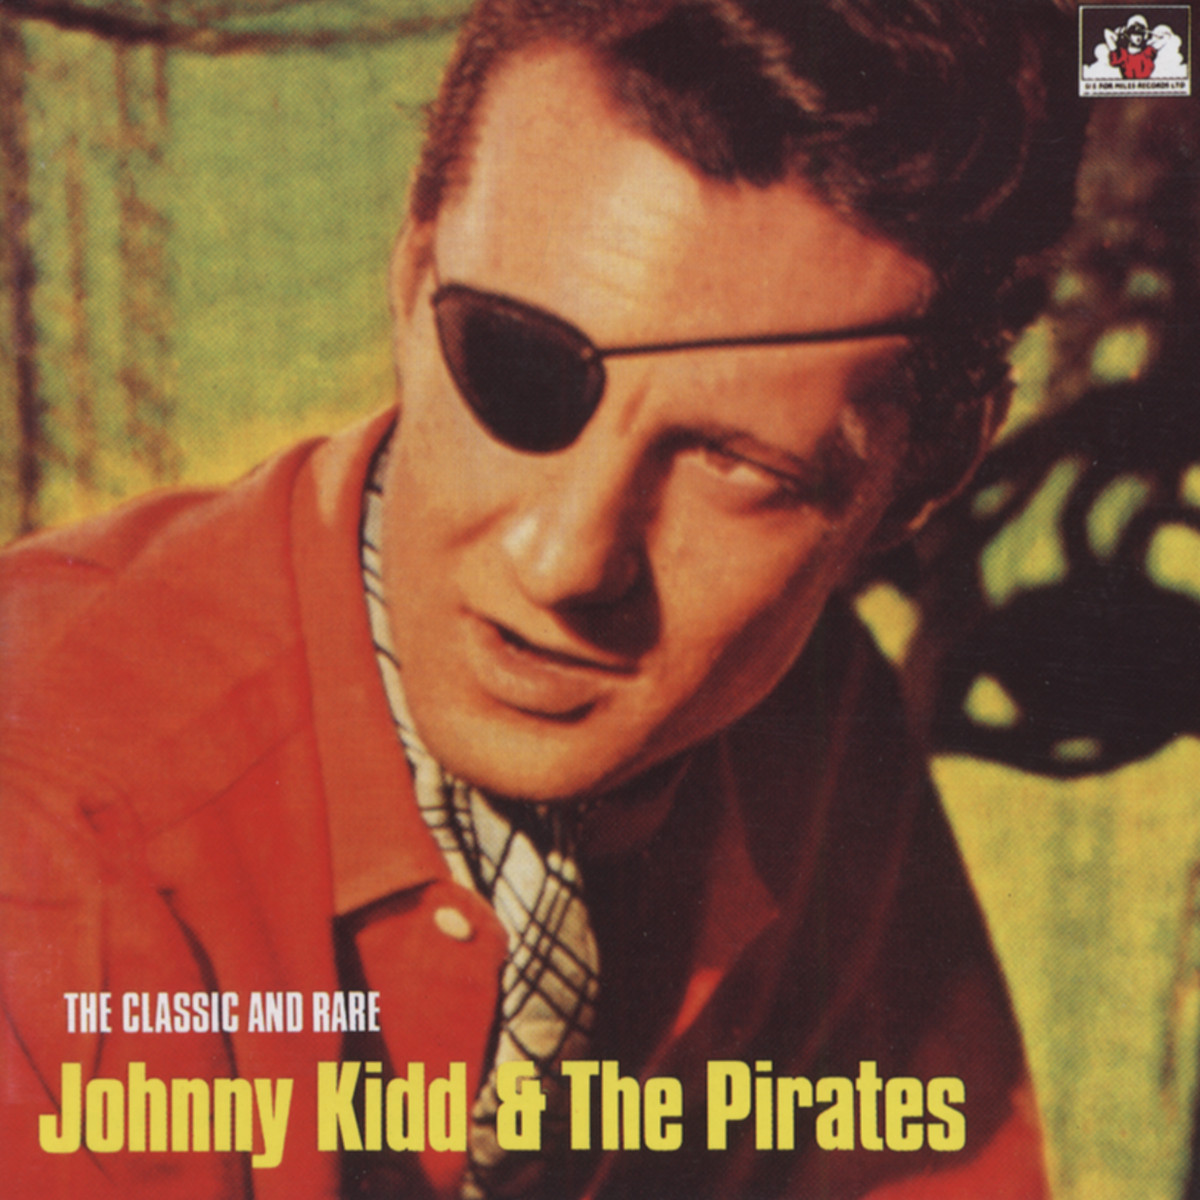 Johnny & The Pirates Kidd - Johnny Kidd &The Pirates - The Classic & Rare (CD)